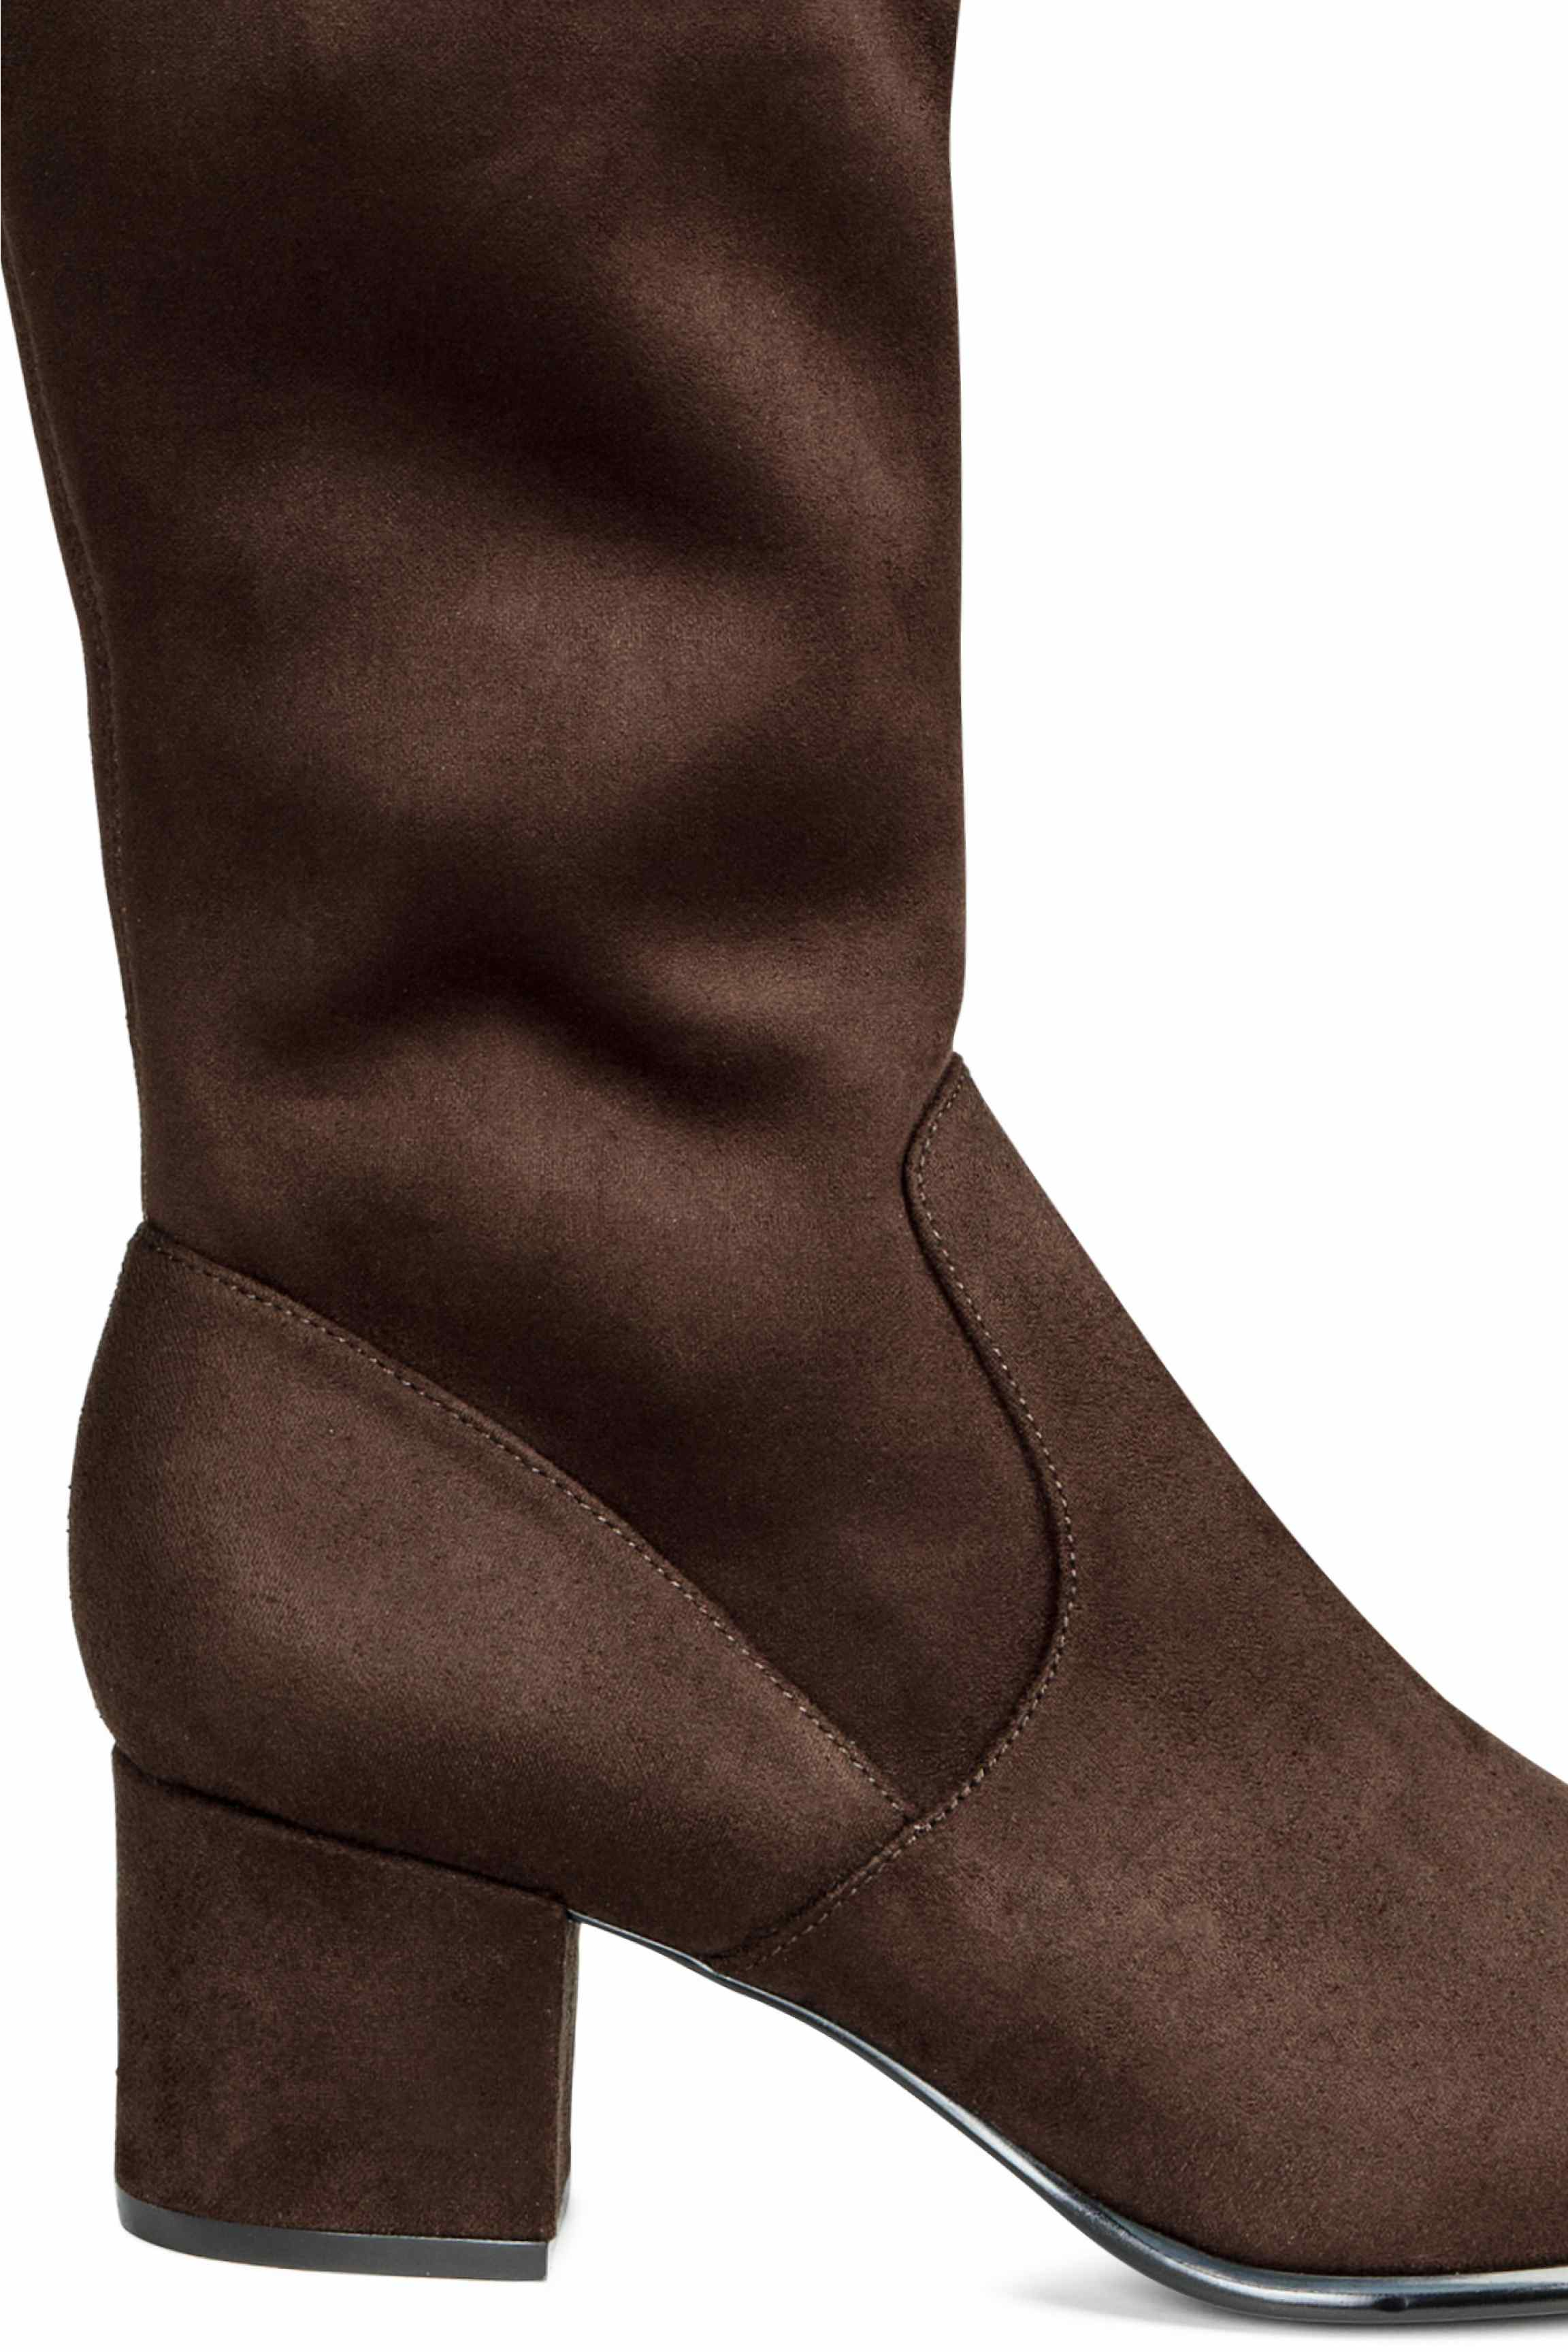 a5214e3a3b264 H&M Long Boots in Brown - Lyst